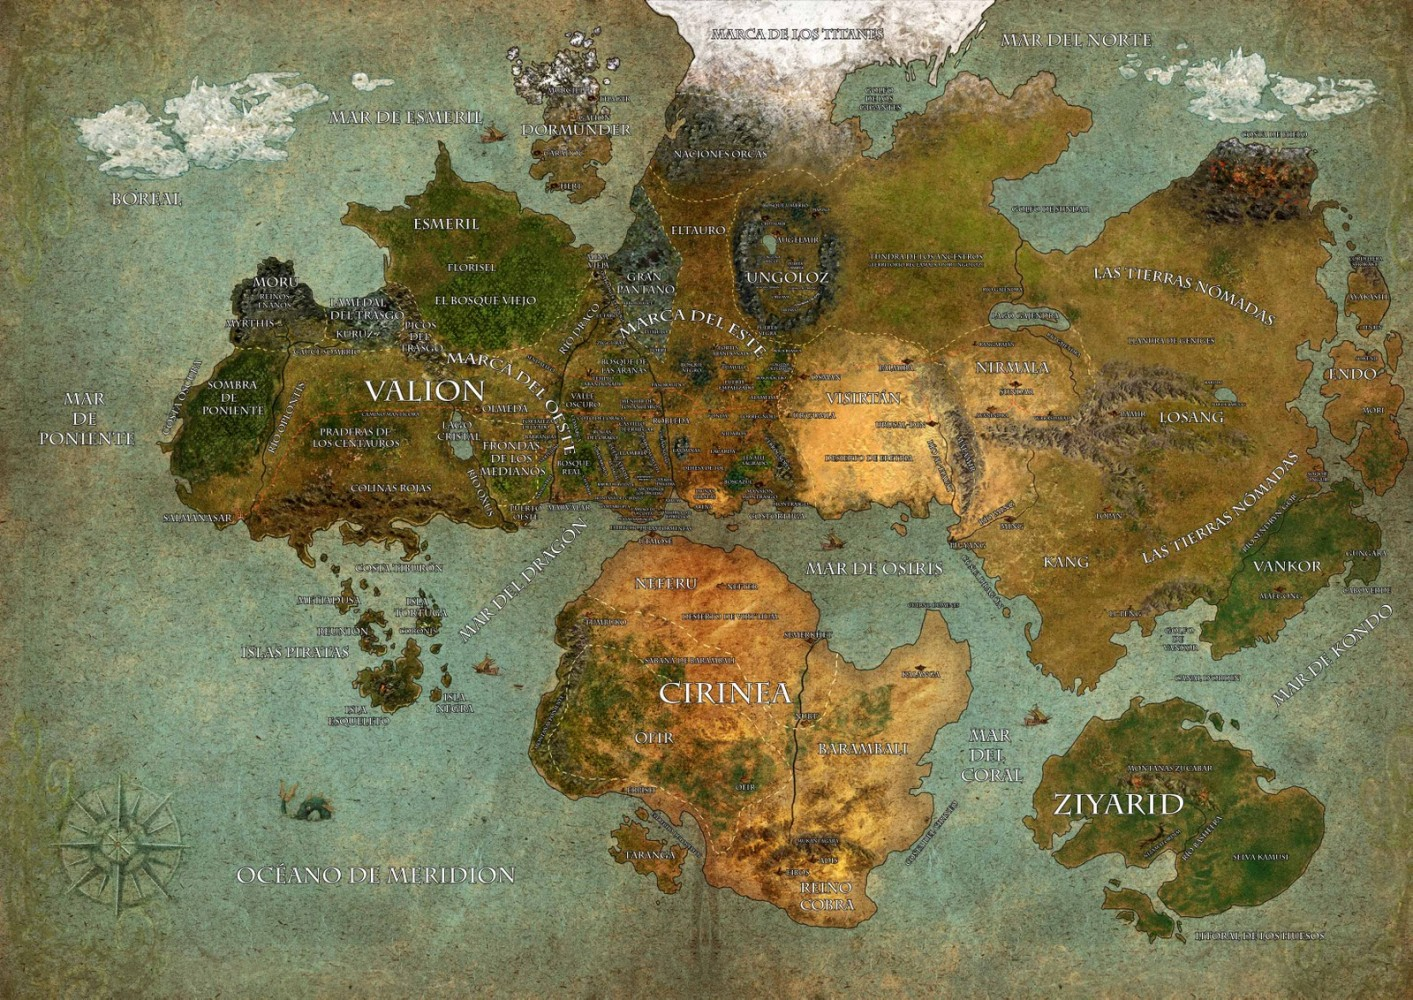 main-image-map uploaded by Snowthewolf